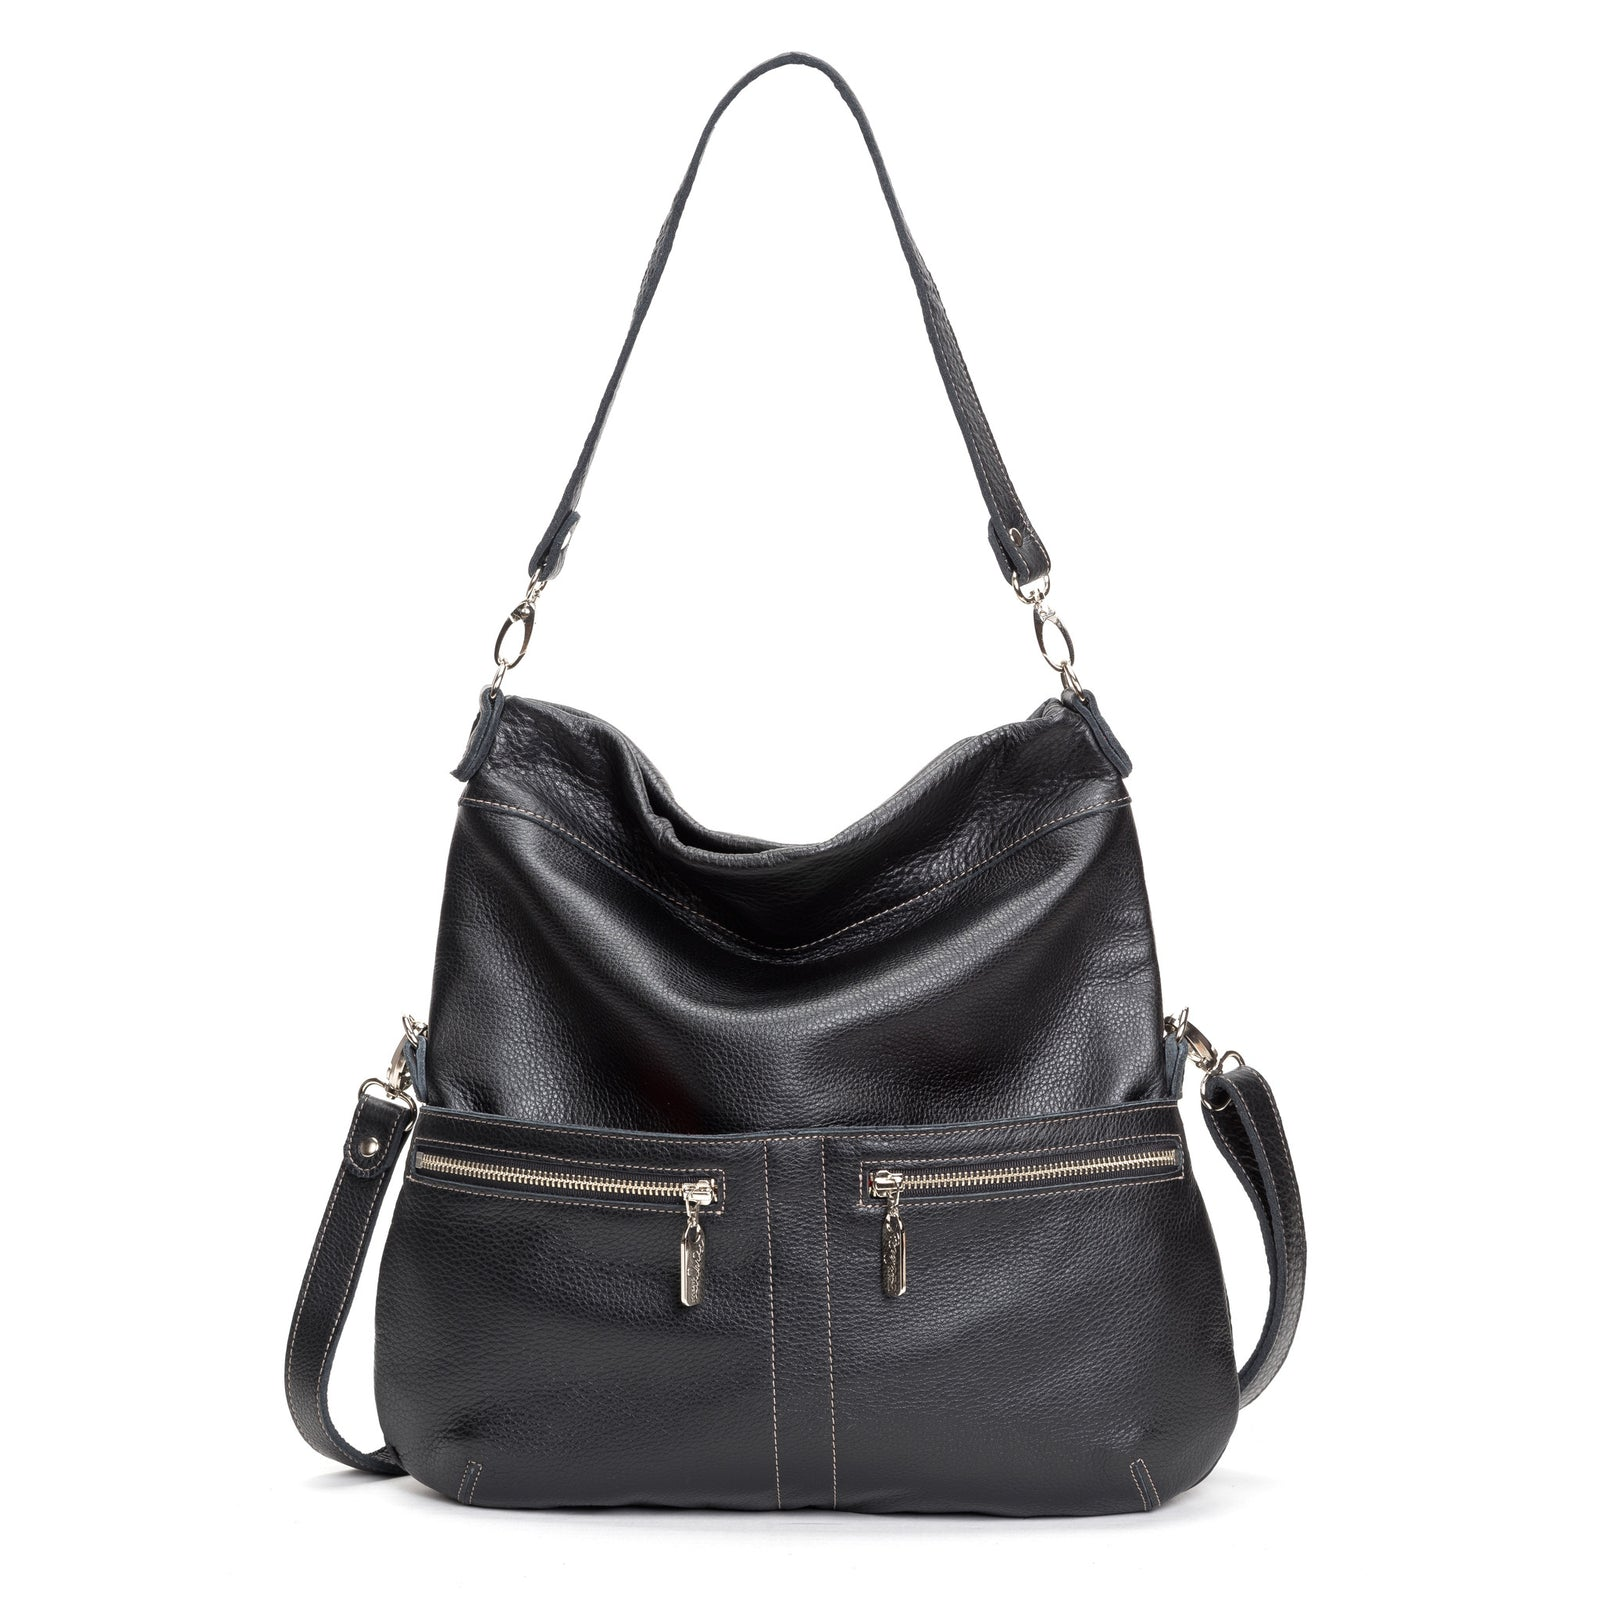 Lauren Crossbody - Eclipse - Brynn Capella, Large Crossbody